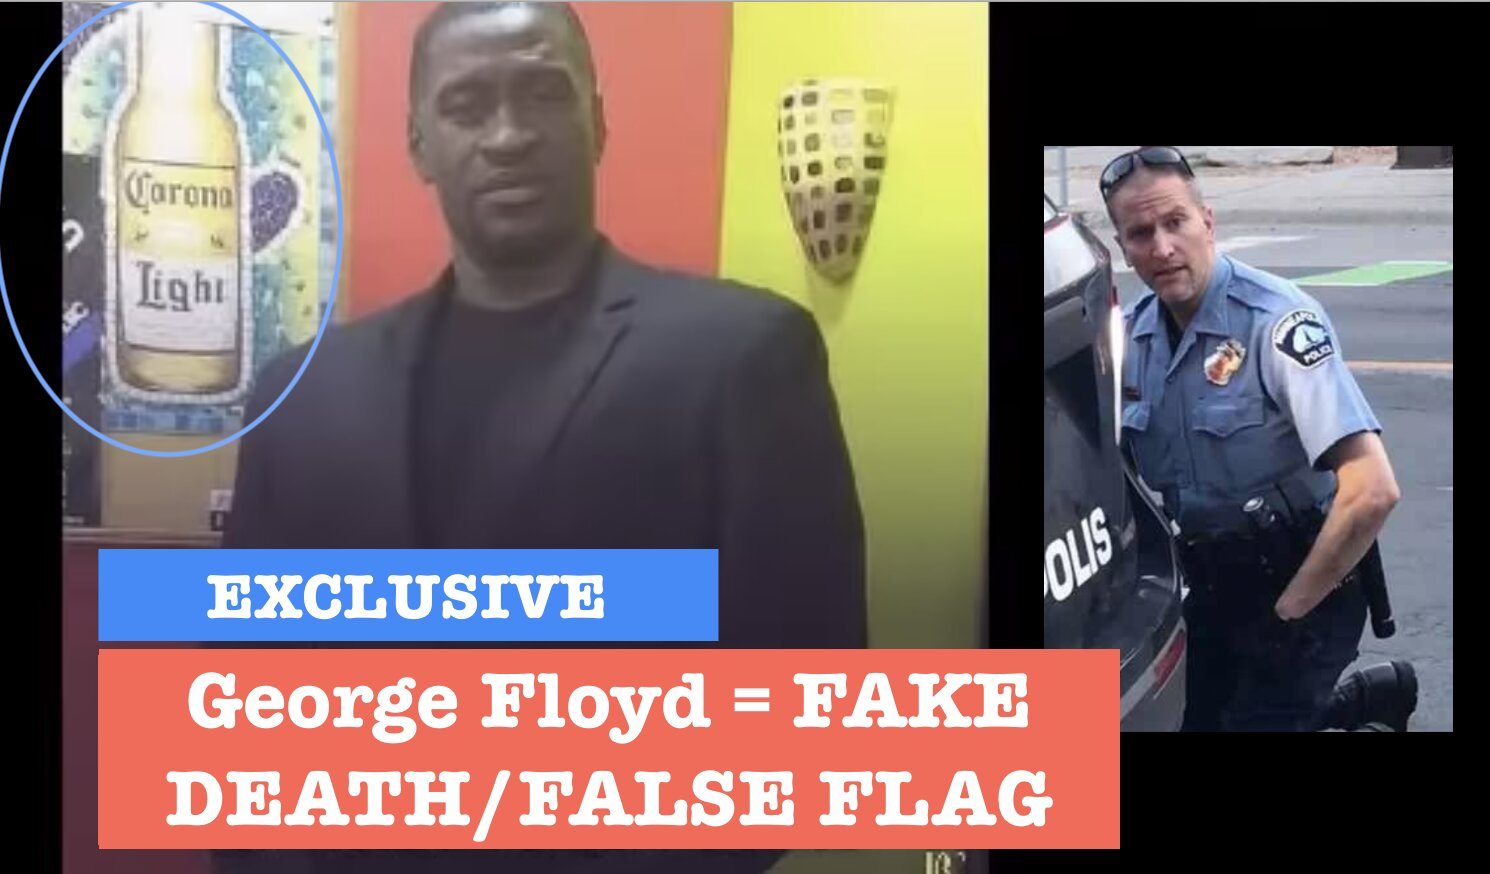 George Floyd: Another…FAKE, New-World-Order STUNT, FALSE FLAG to deceive Americans for their further ENSLAVEMENT